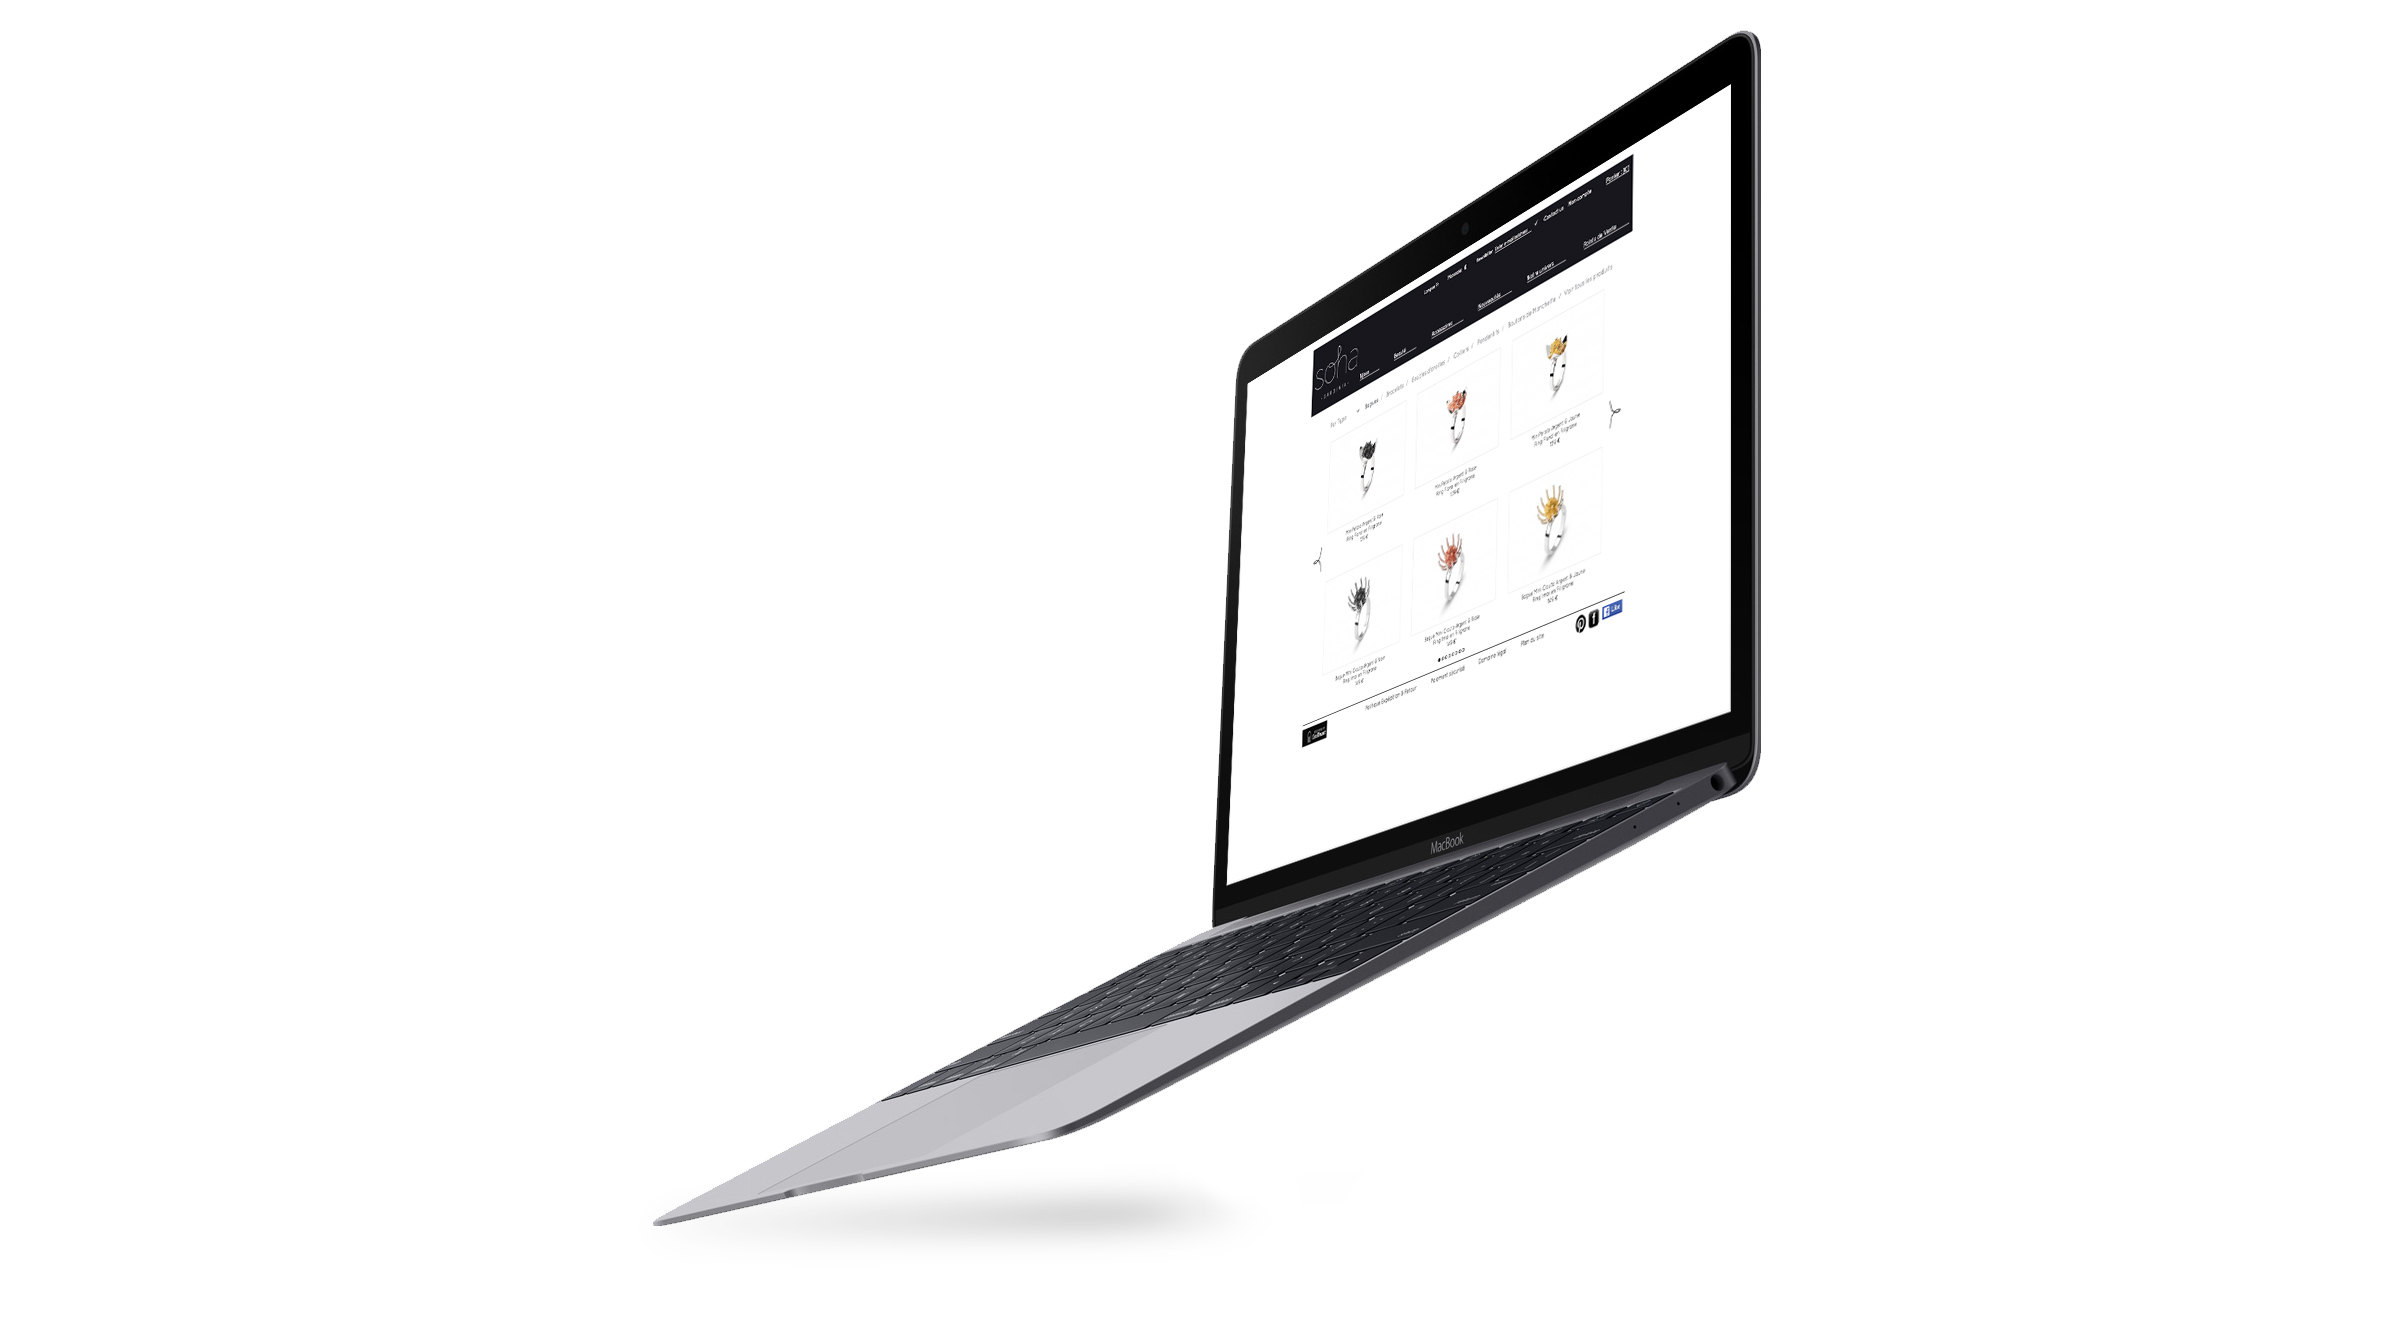 Flying-Macbook-Mockup